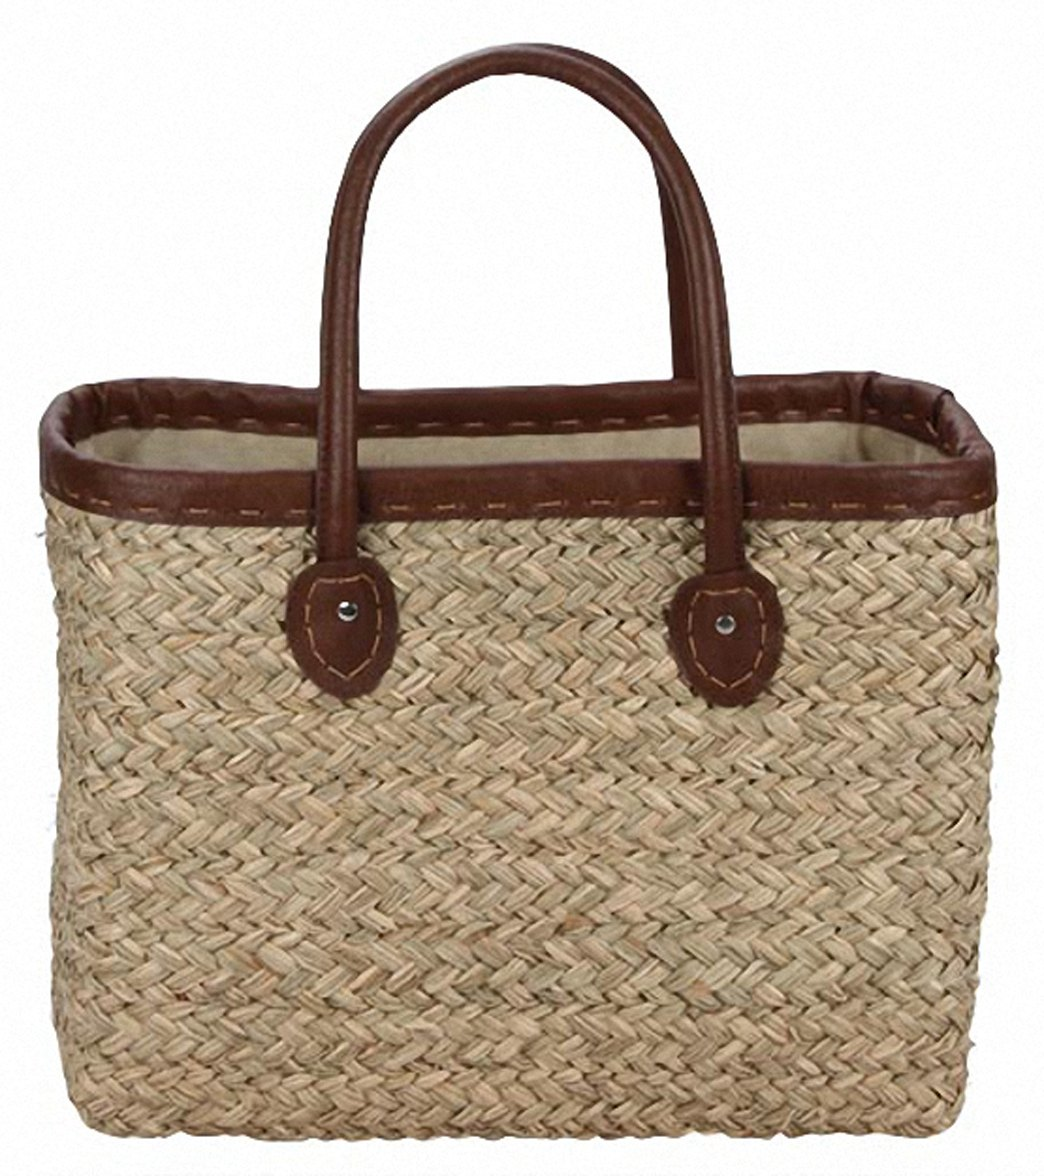 7f9317ec Sun N Sand Woodland Hue Straw Square Tote Beach Bag at SwimOutlet.com